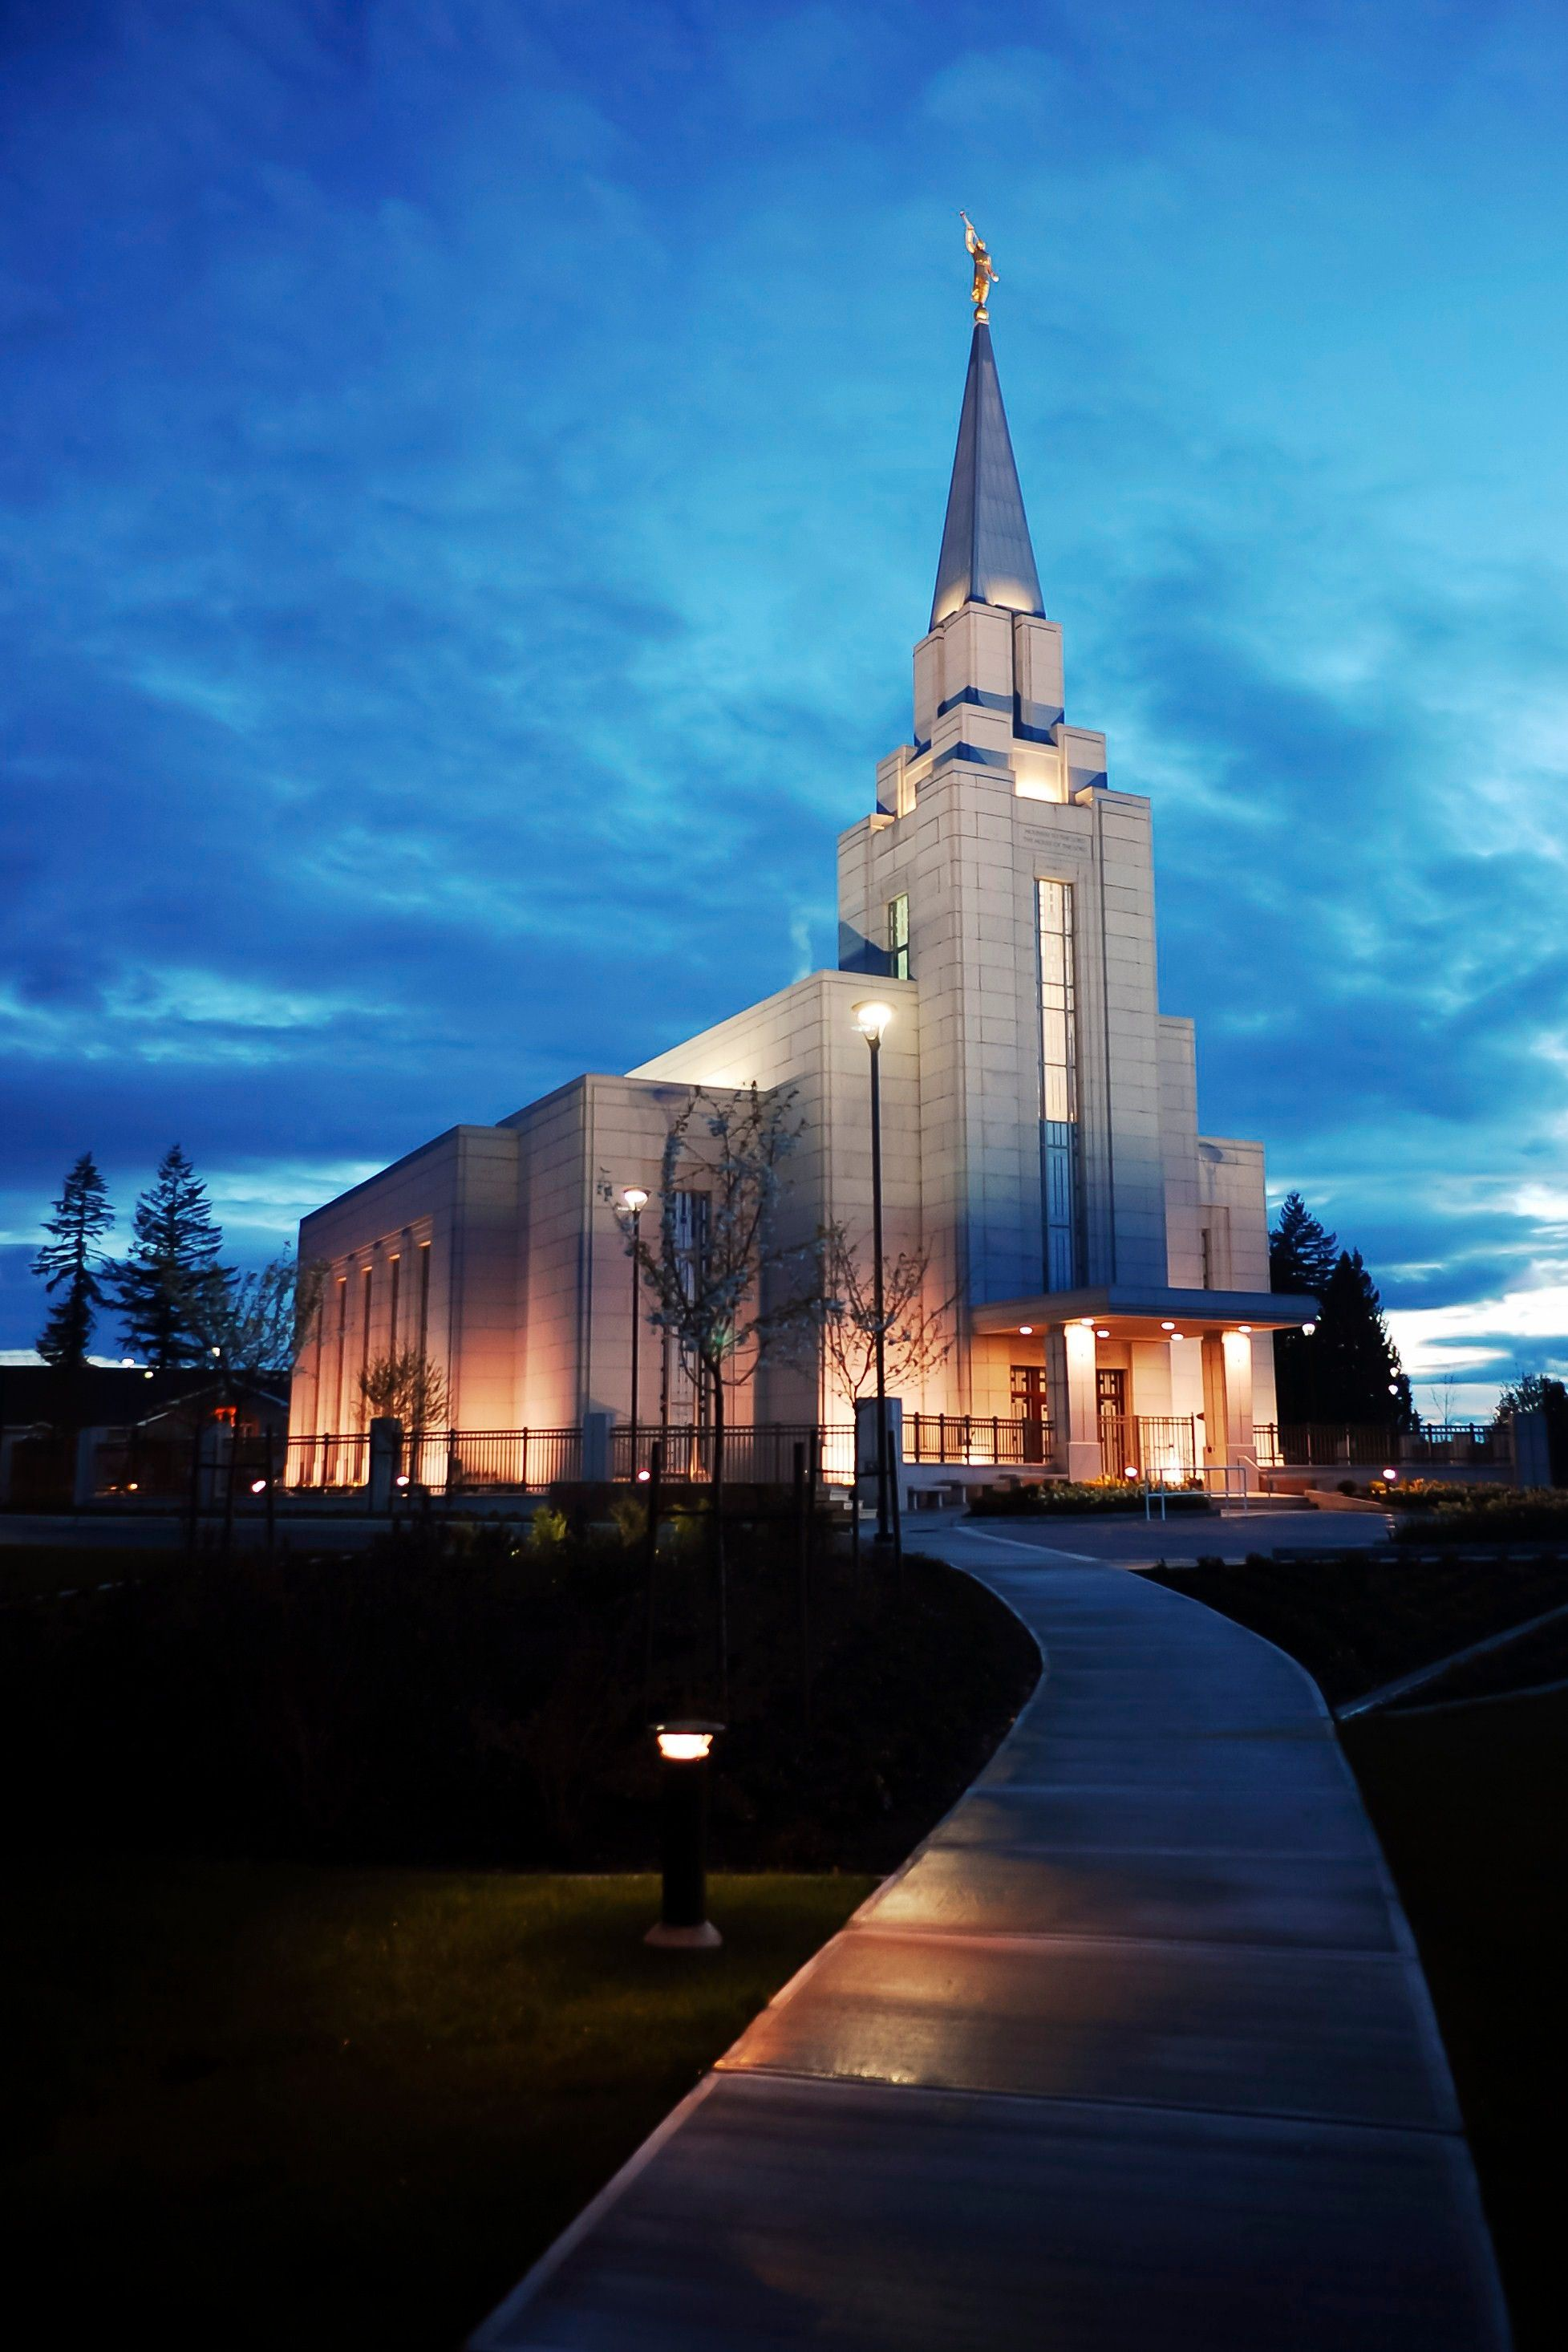 The Vancouver British Columbia Temple in the evening, with the entrance and grounds.